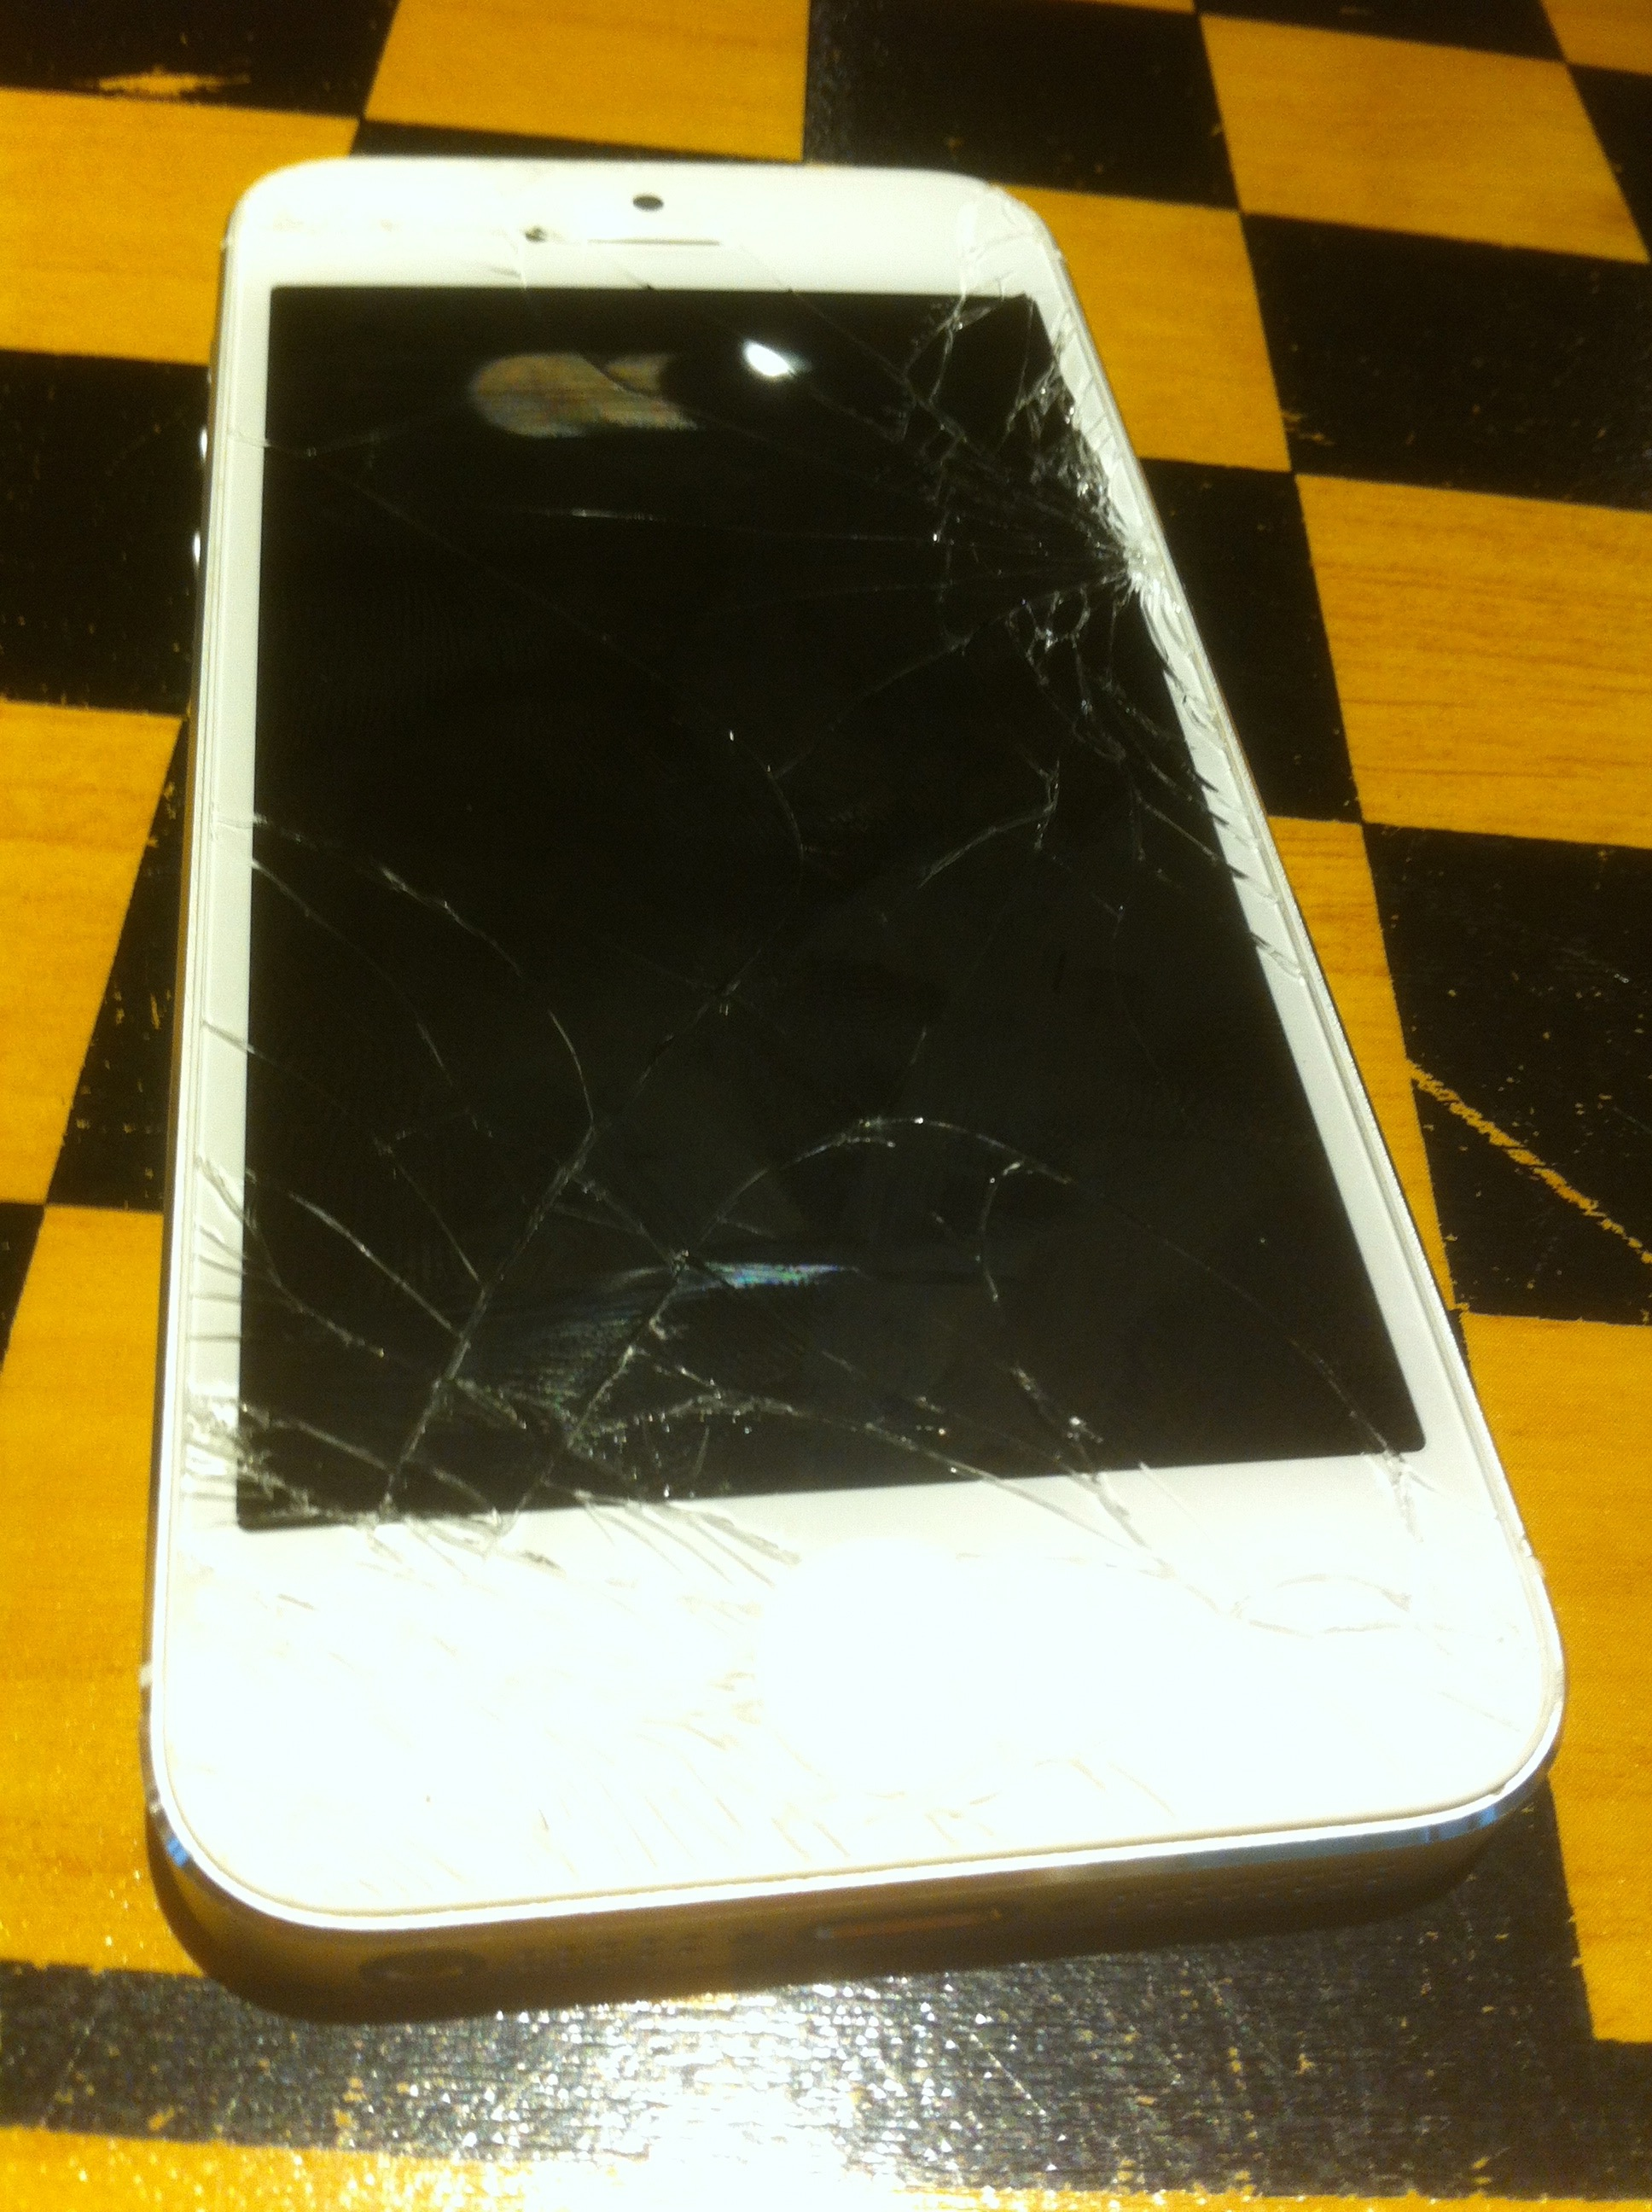 I Can't Help Crying About My Shattered iPhone 5 Screen